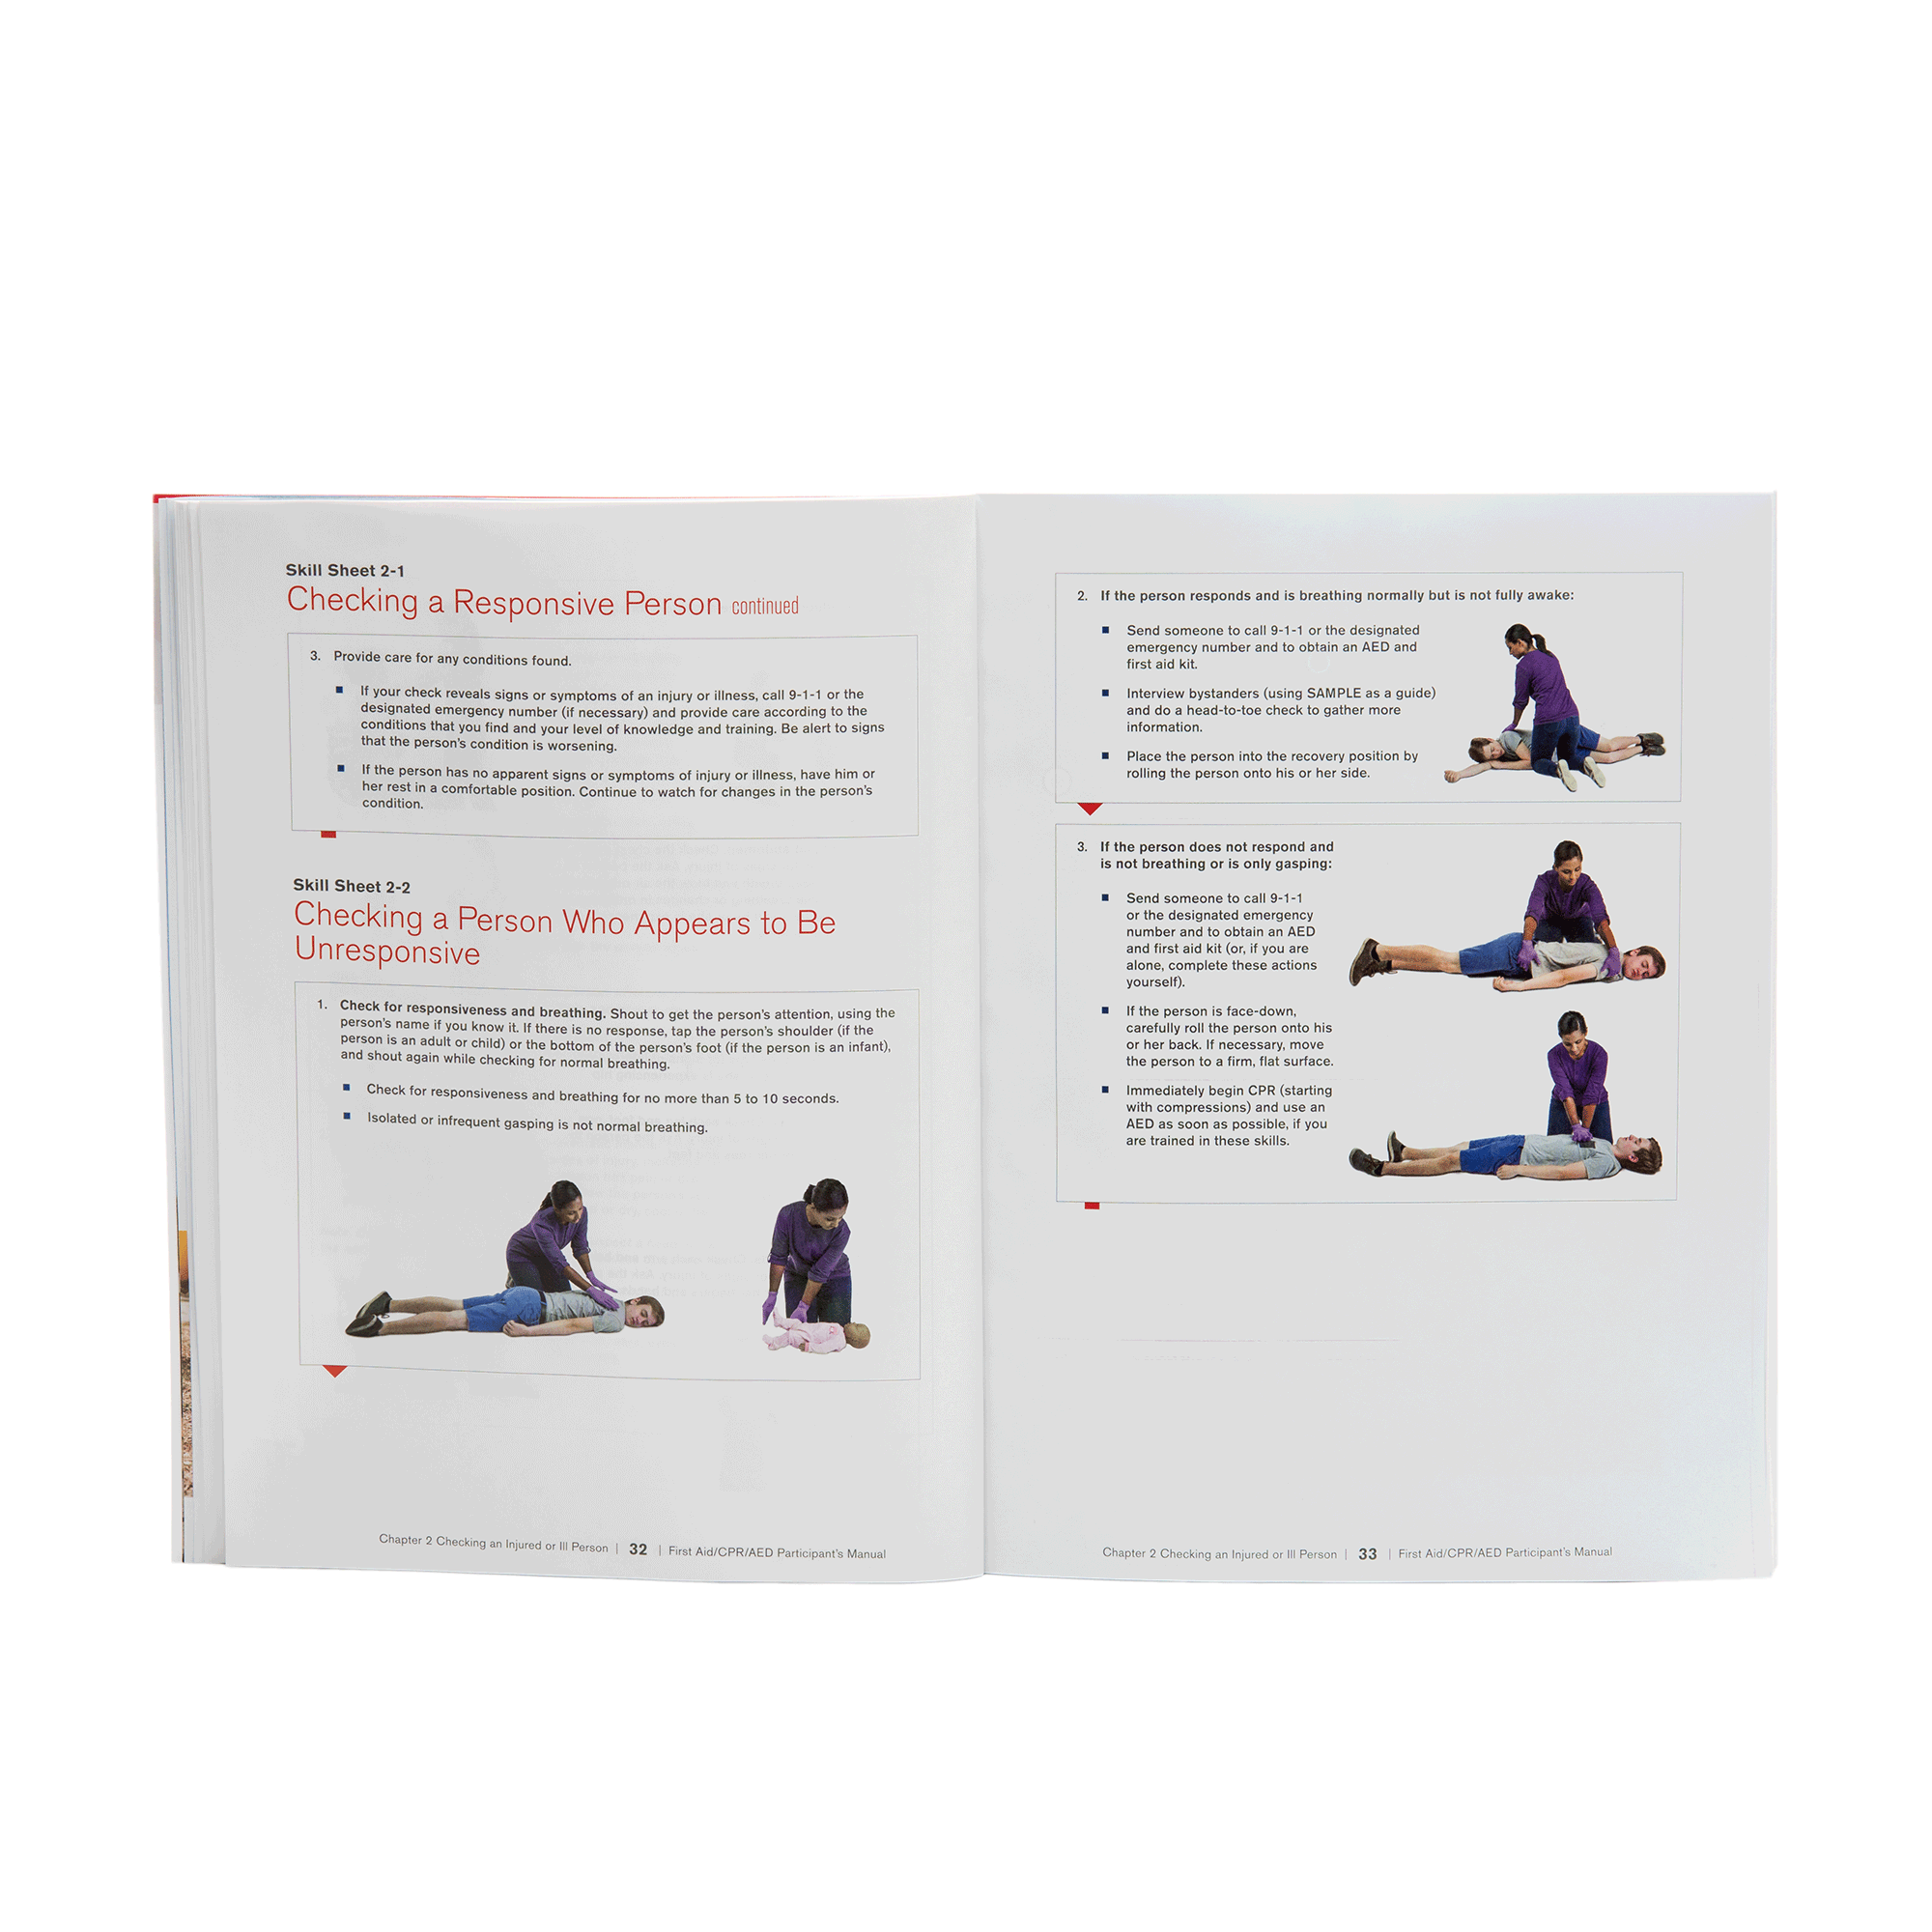 Red Cross Cpr Certification Manual Manual Guide Example 2018